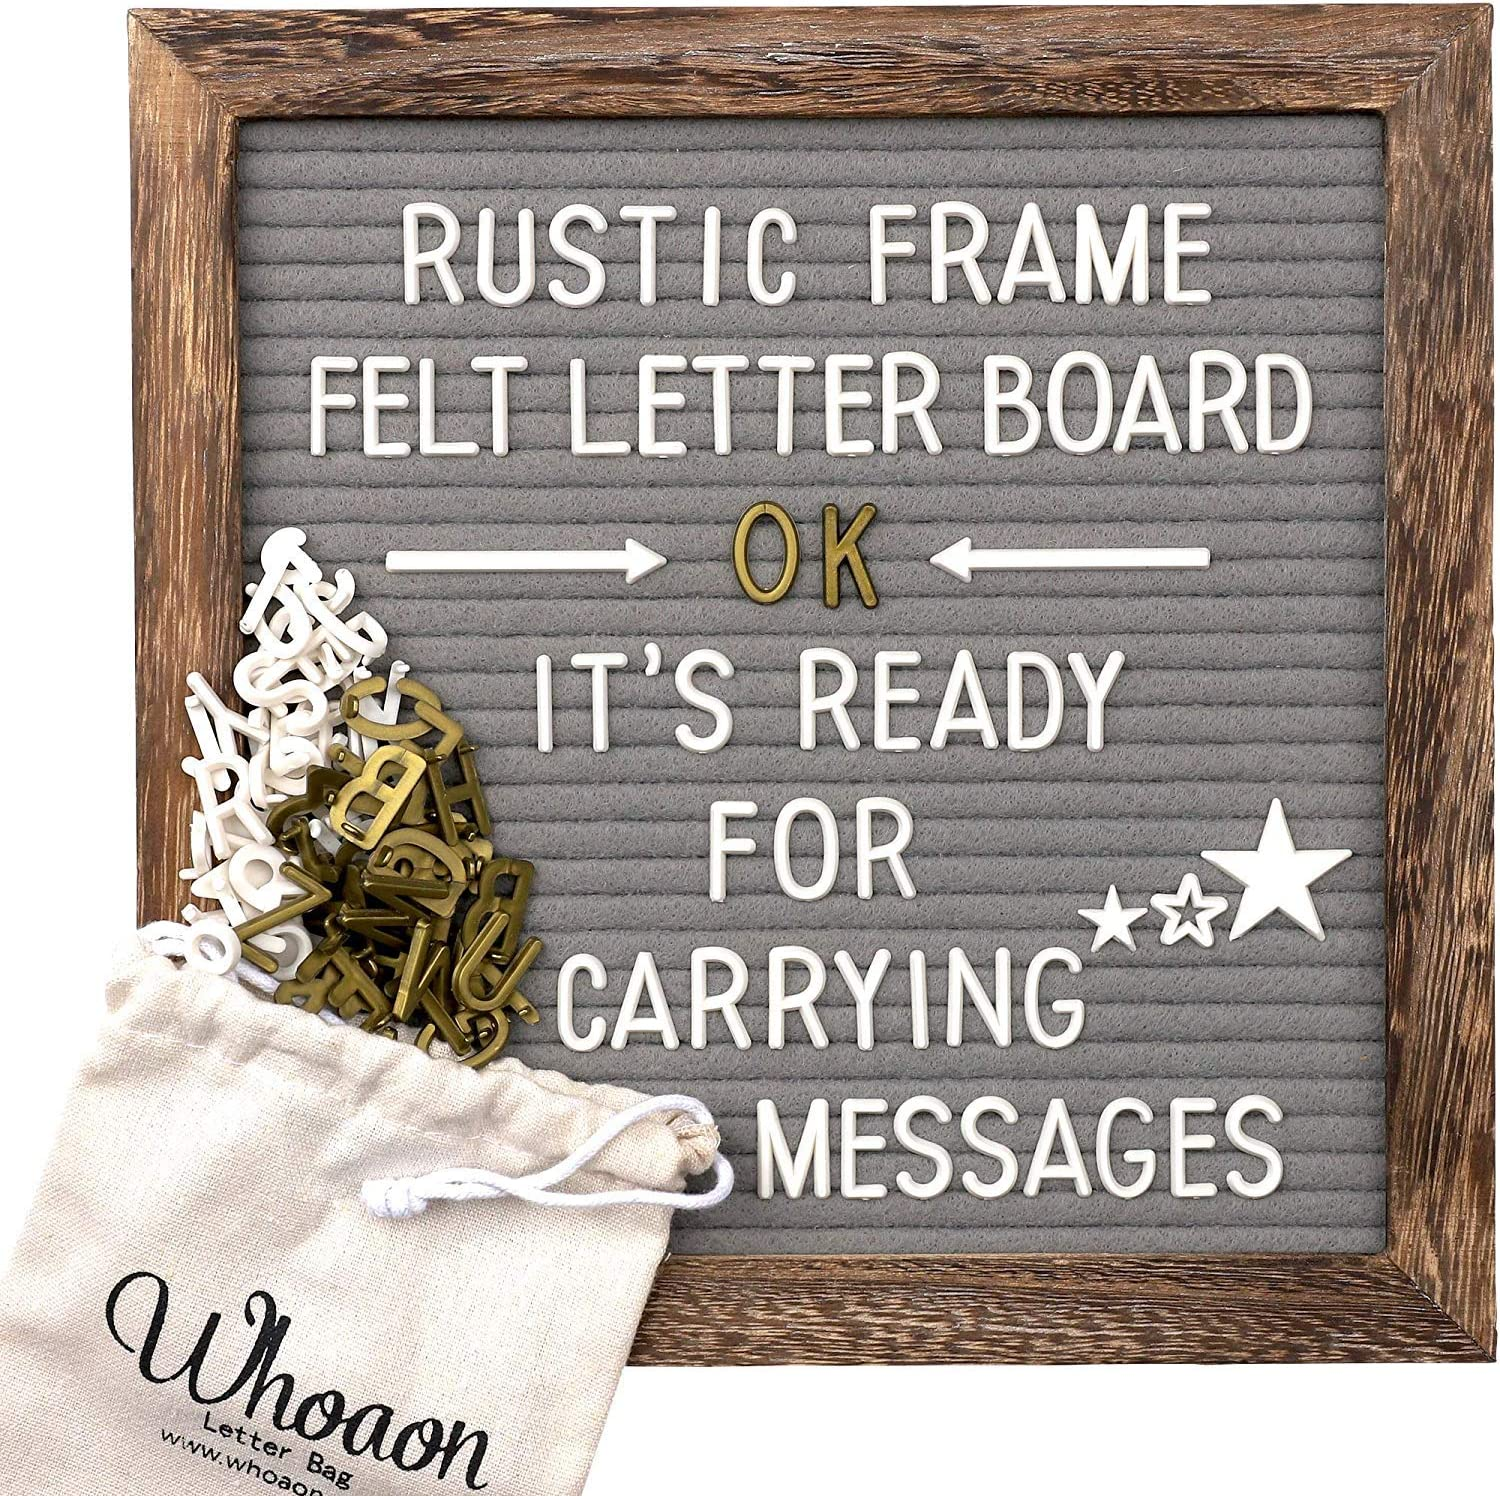 Rustic Wood Frame Gray Felt Letter Board 10x10 inches. Pre-Cut White & Gold Letters, Months & Days Cursive Words, Additional Symbols & Emojis, 2 Letter Bags, Scissors, Vintage Stand. by whoaon